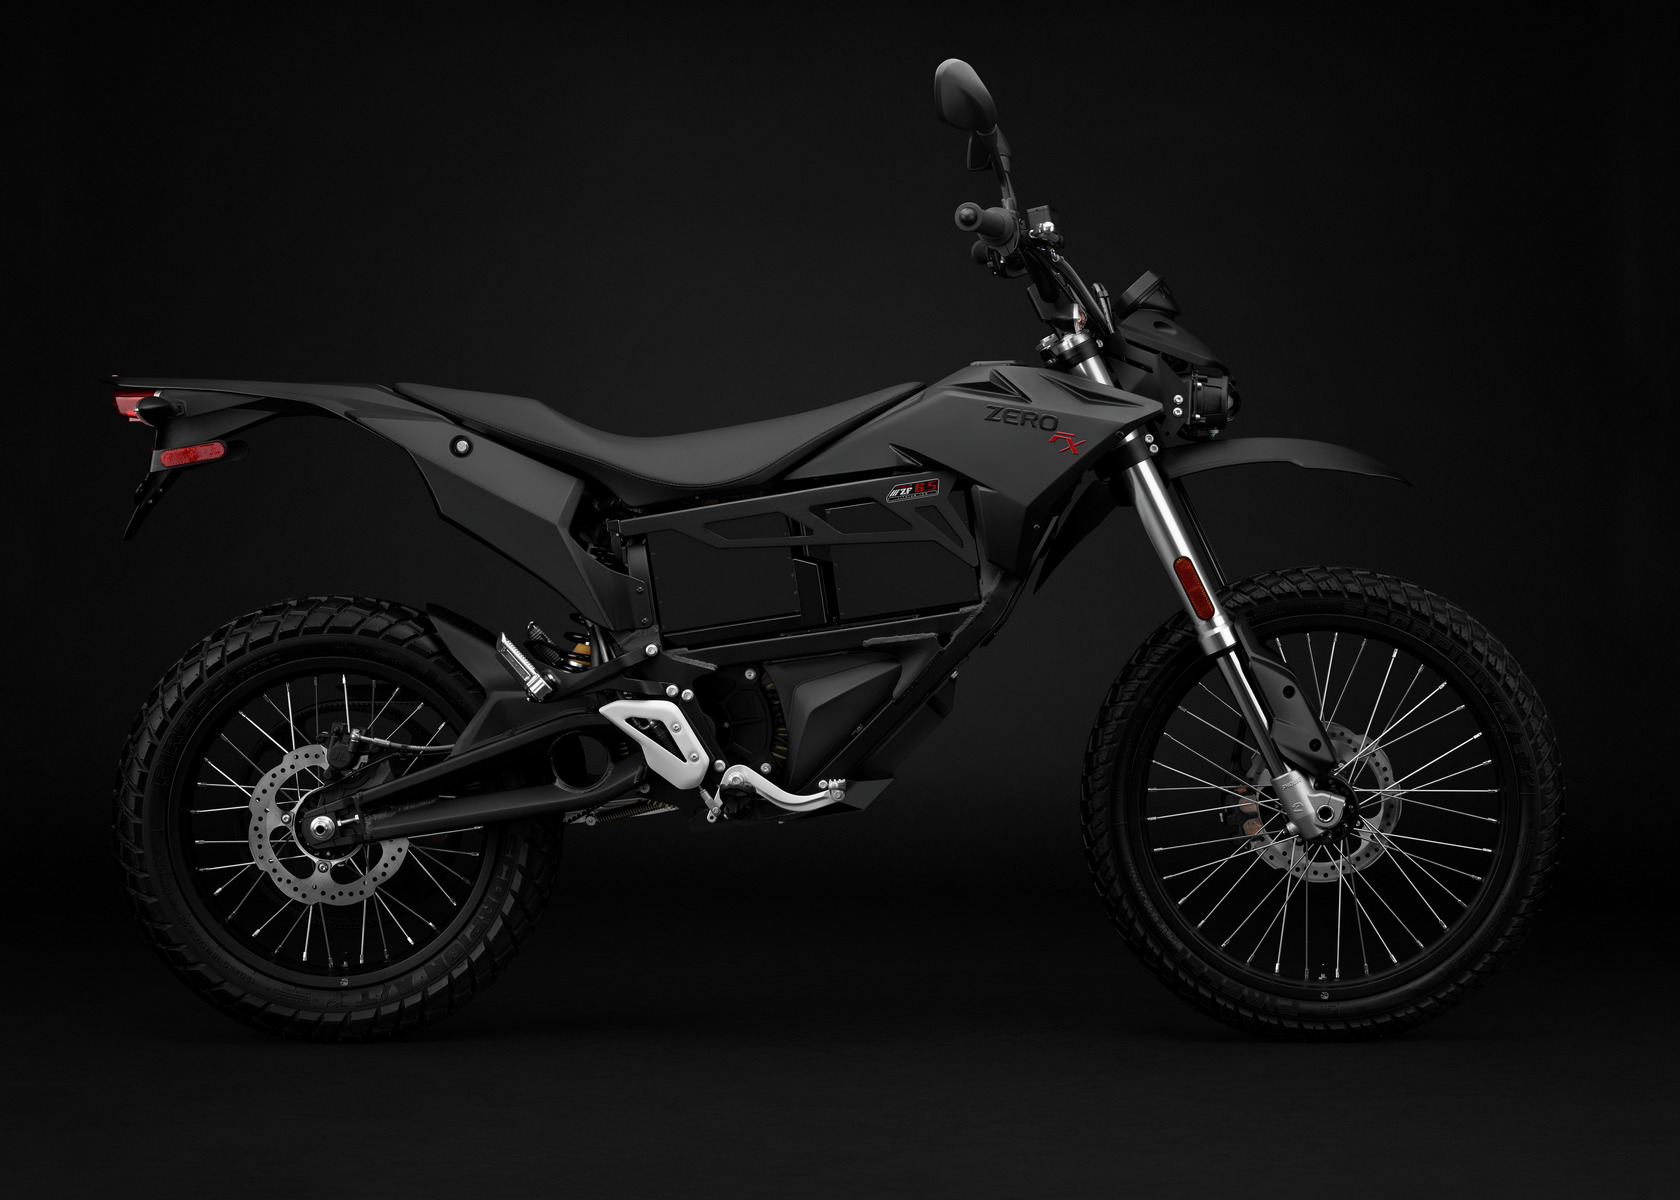 2016 Zero FX Electric Motorcycle: Black Profile Right